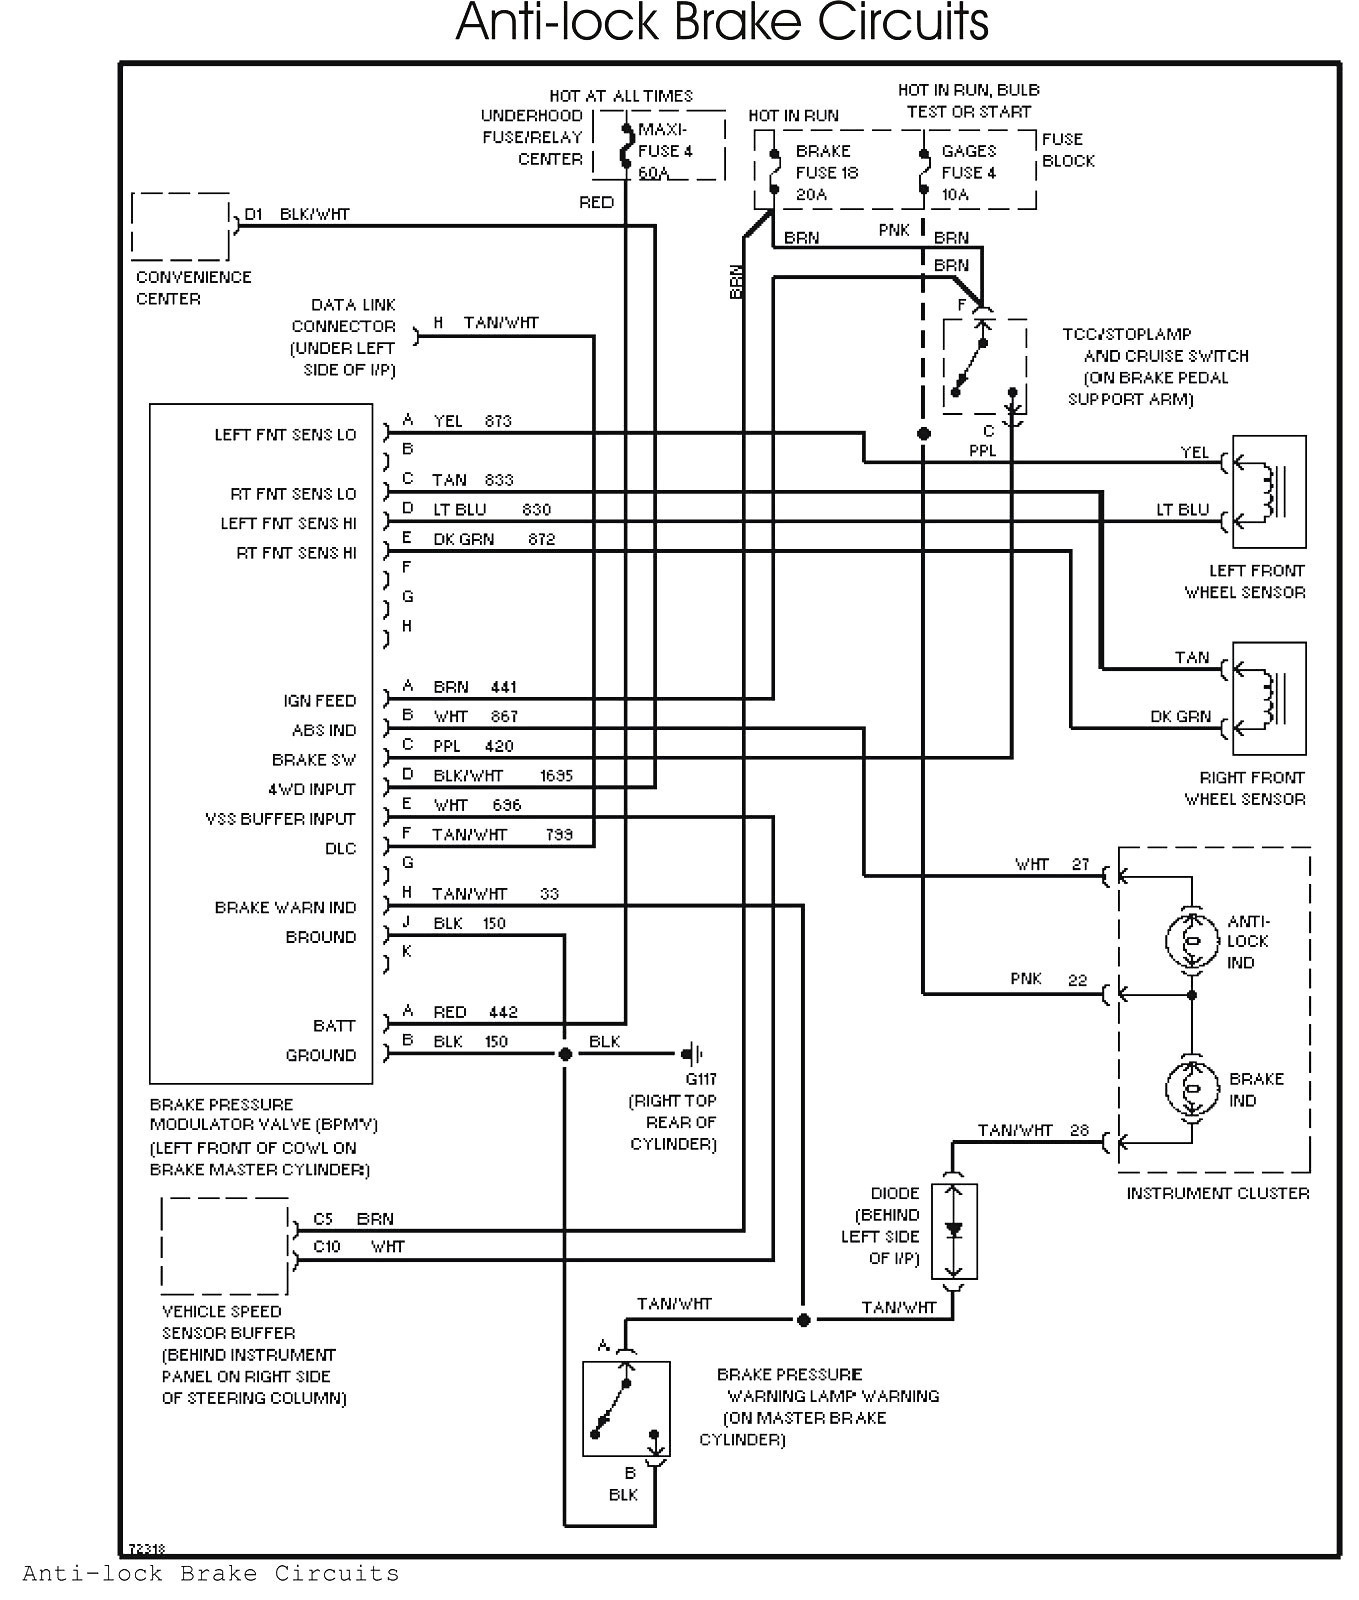 Trailer Breakaway Kit Wiring Diagram